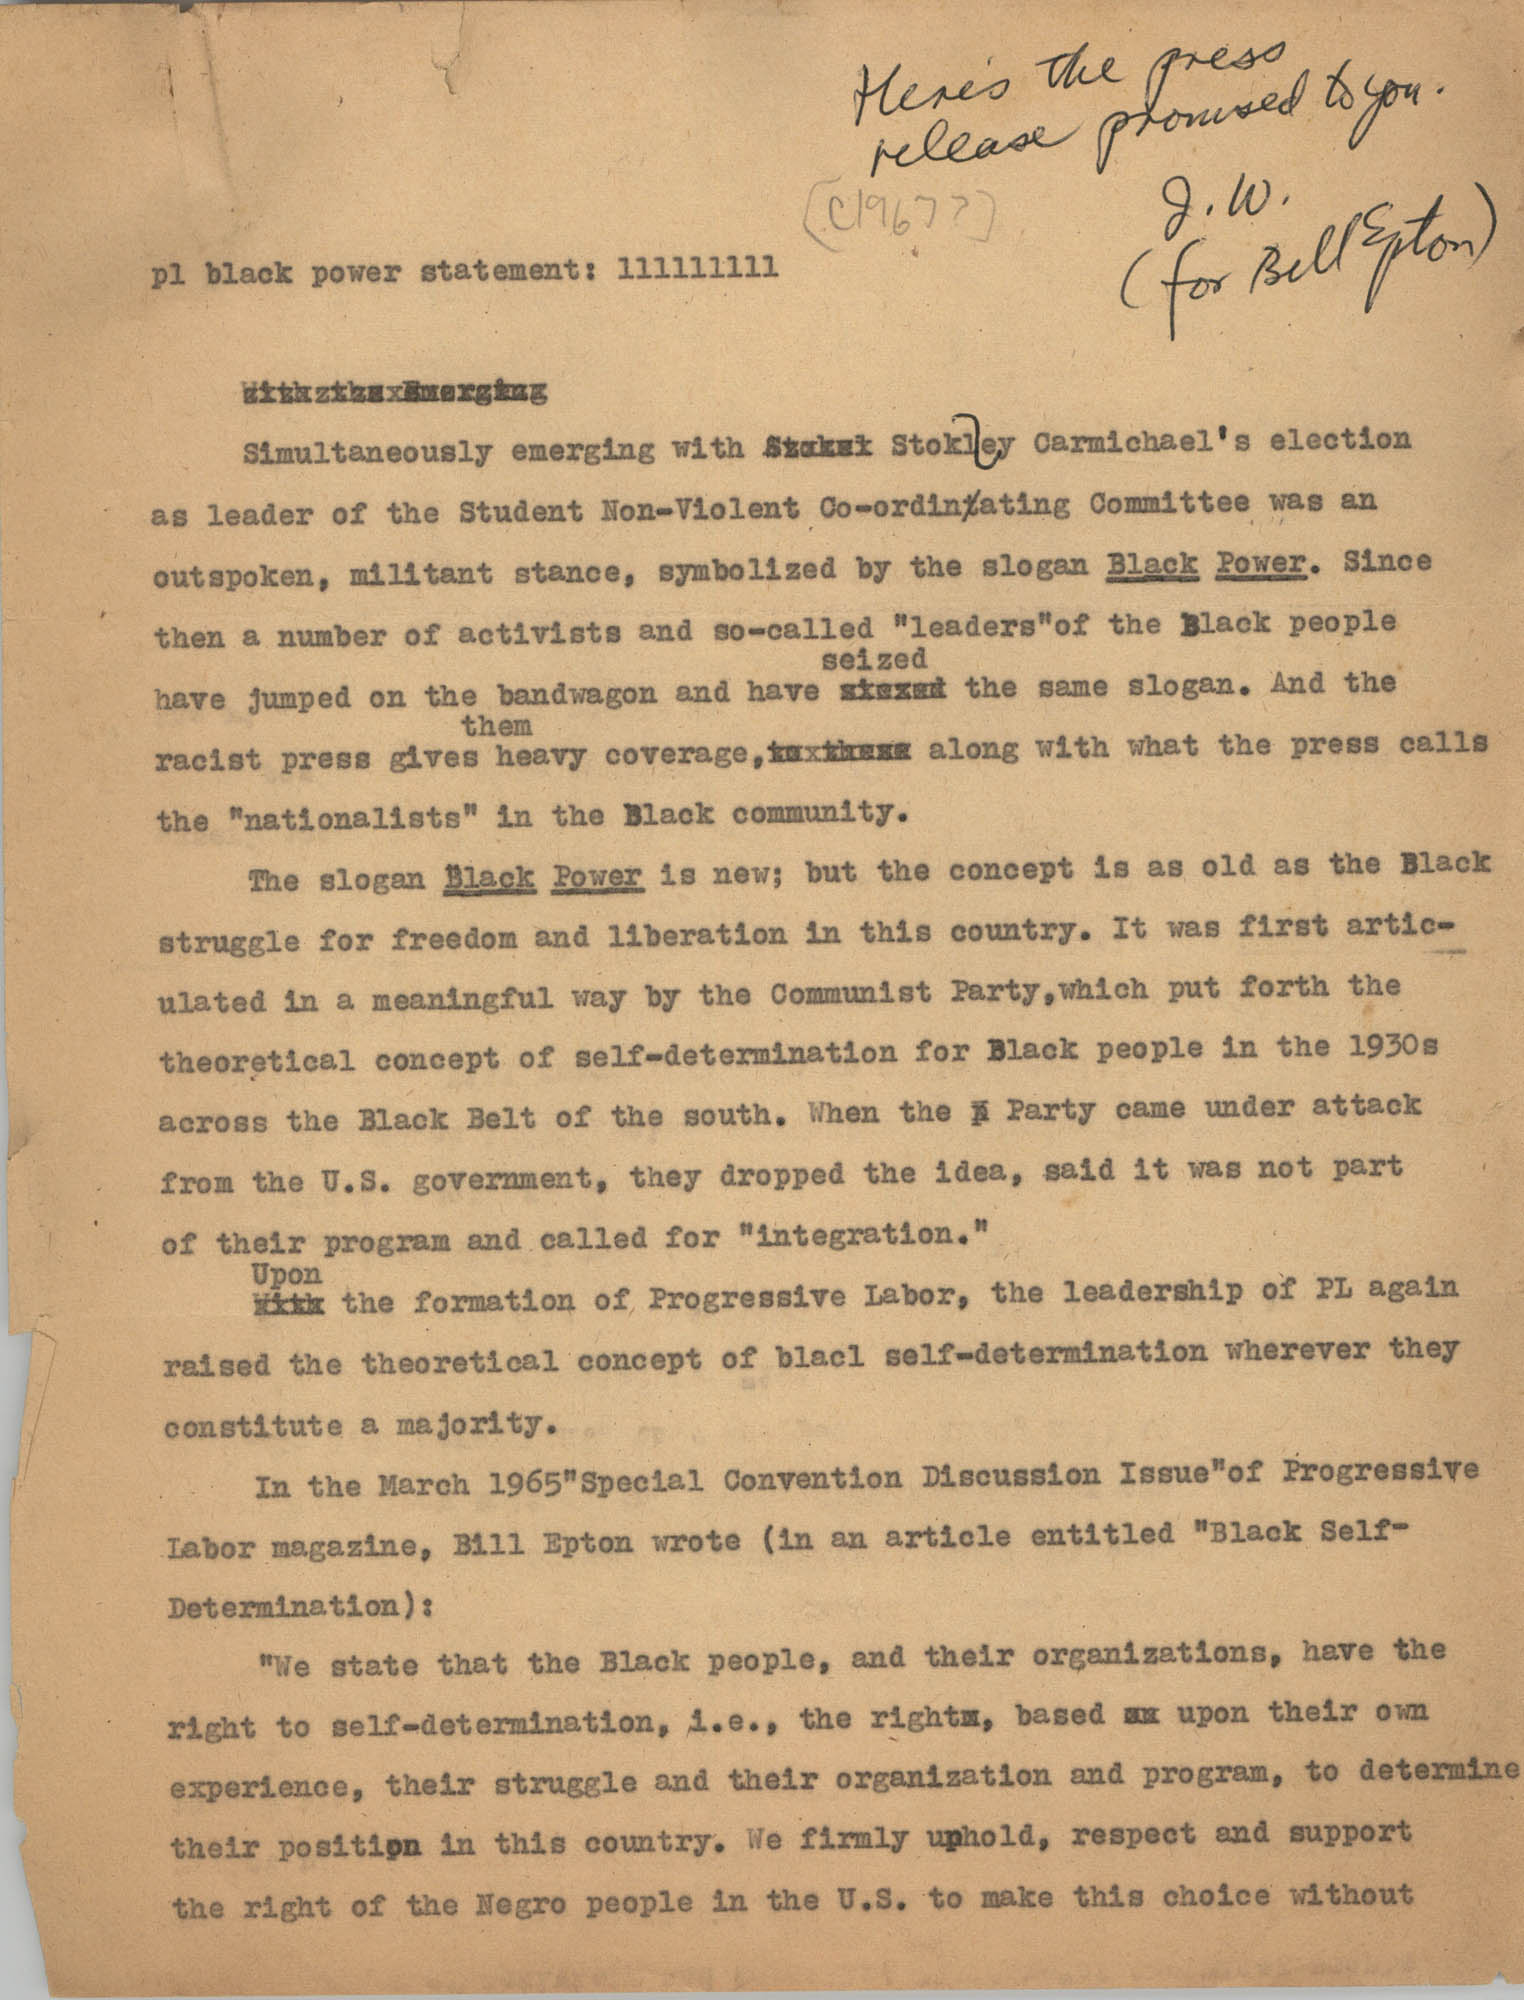 Student Nonviolent Coordinating Committee Press Release, 1967